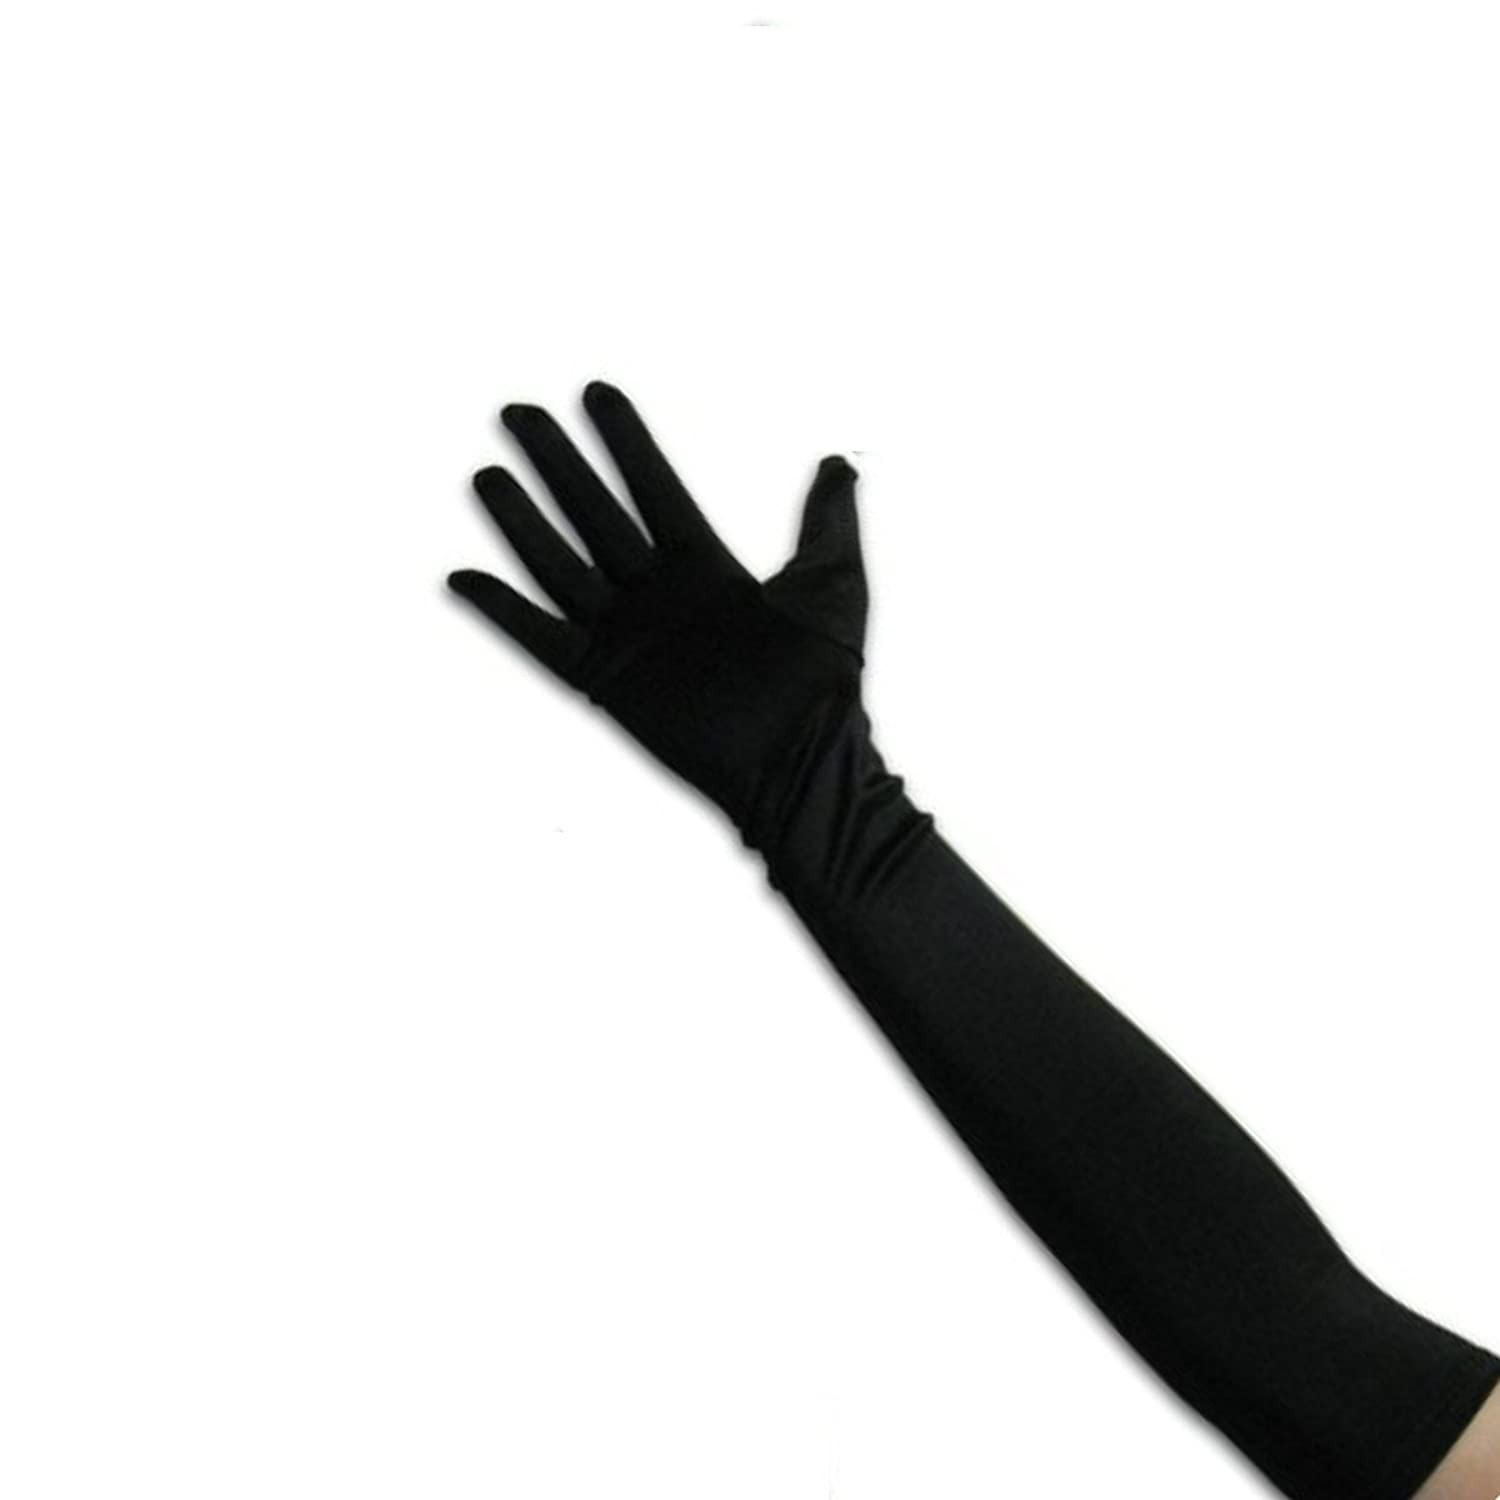 Victorian Inspired Womens Clothing Tapp Collections™ Classic Adult Size Long Opera/Elbow/Wrist Length Satin Gloves $10.99 AT vintagedancer.com